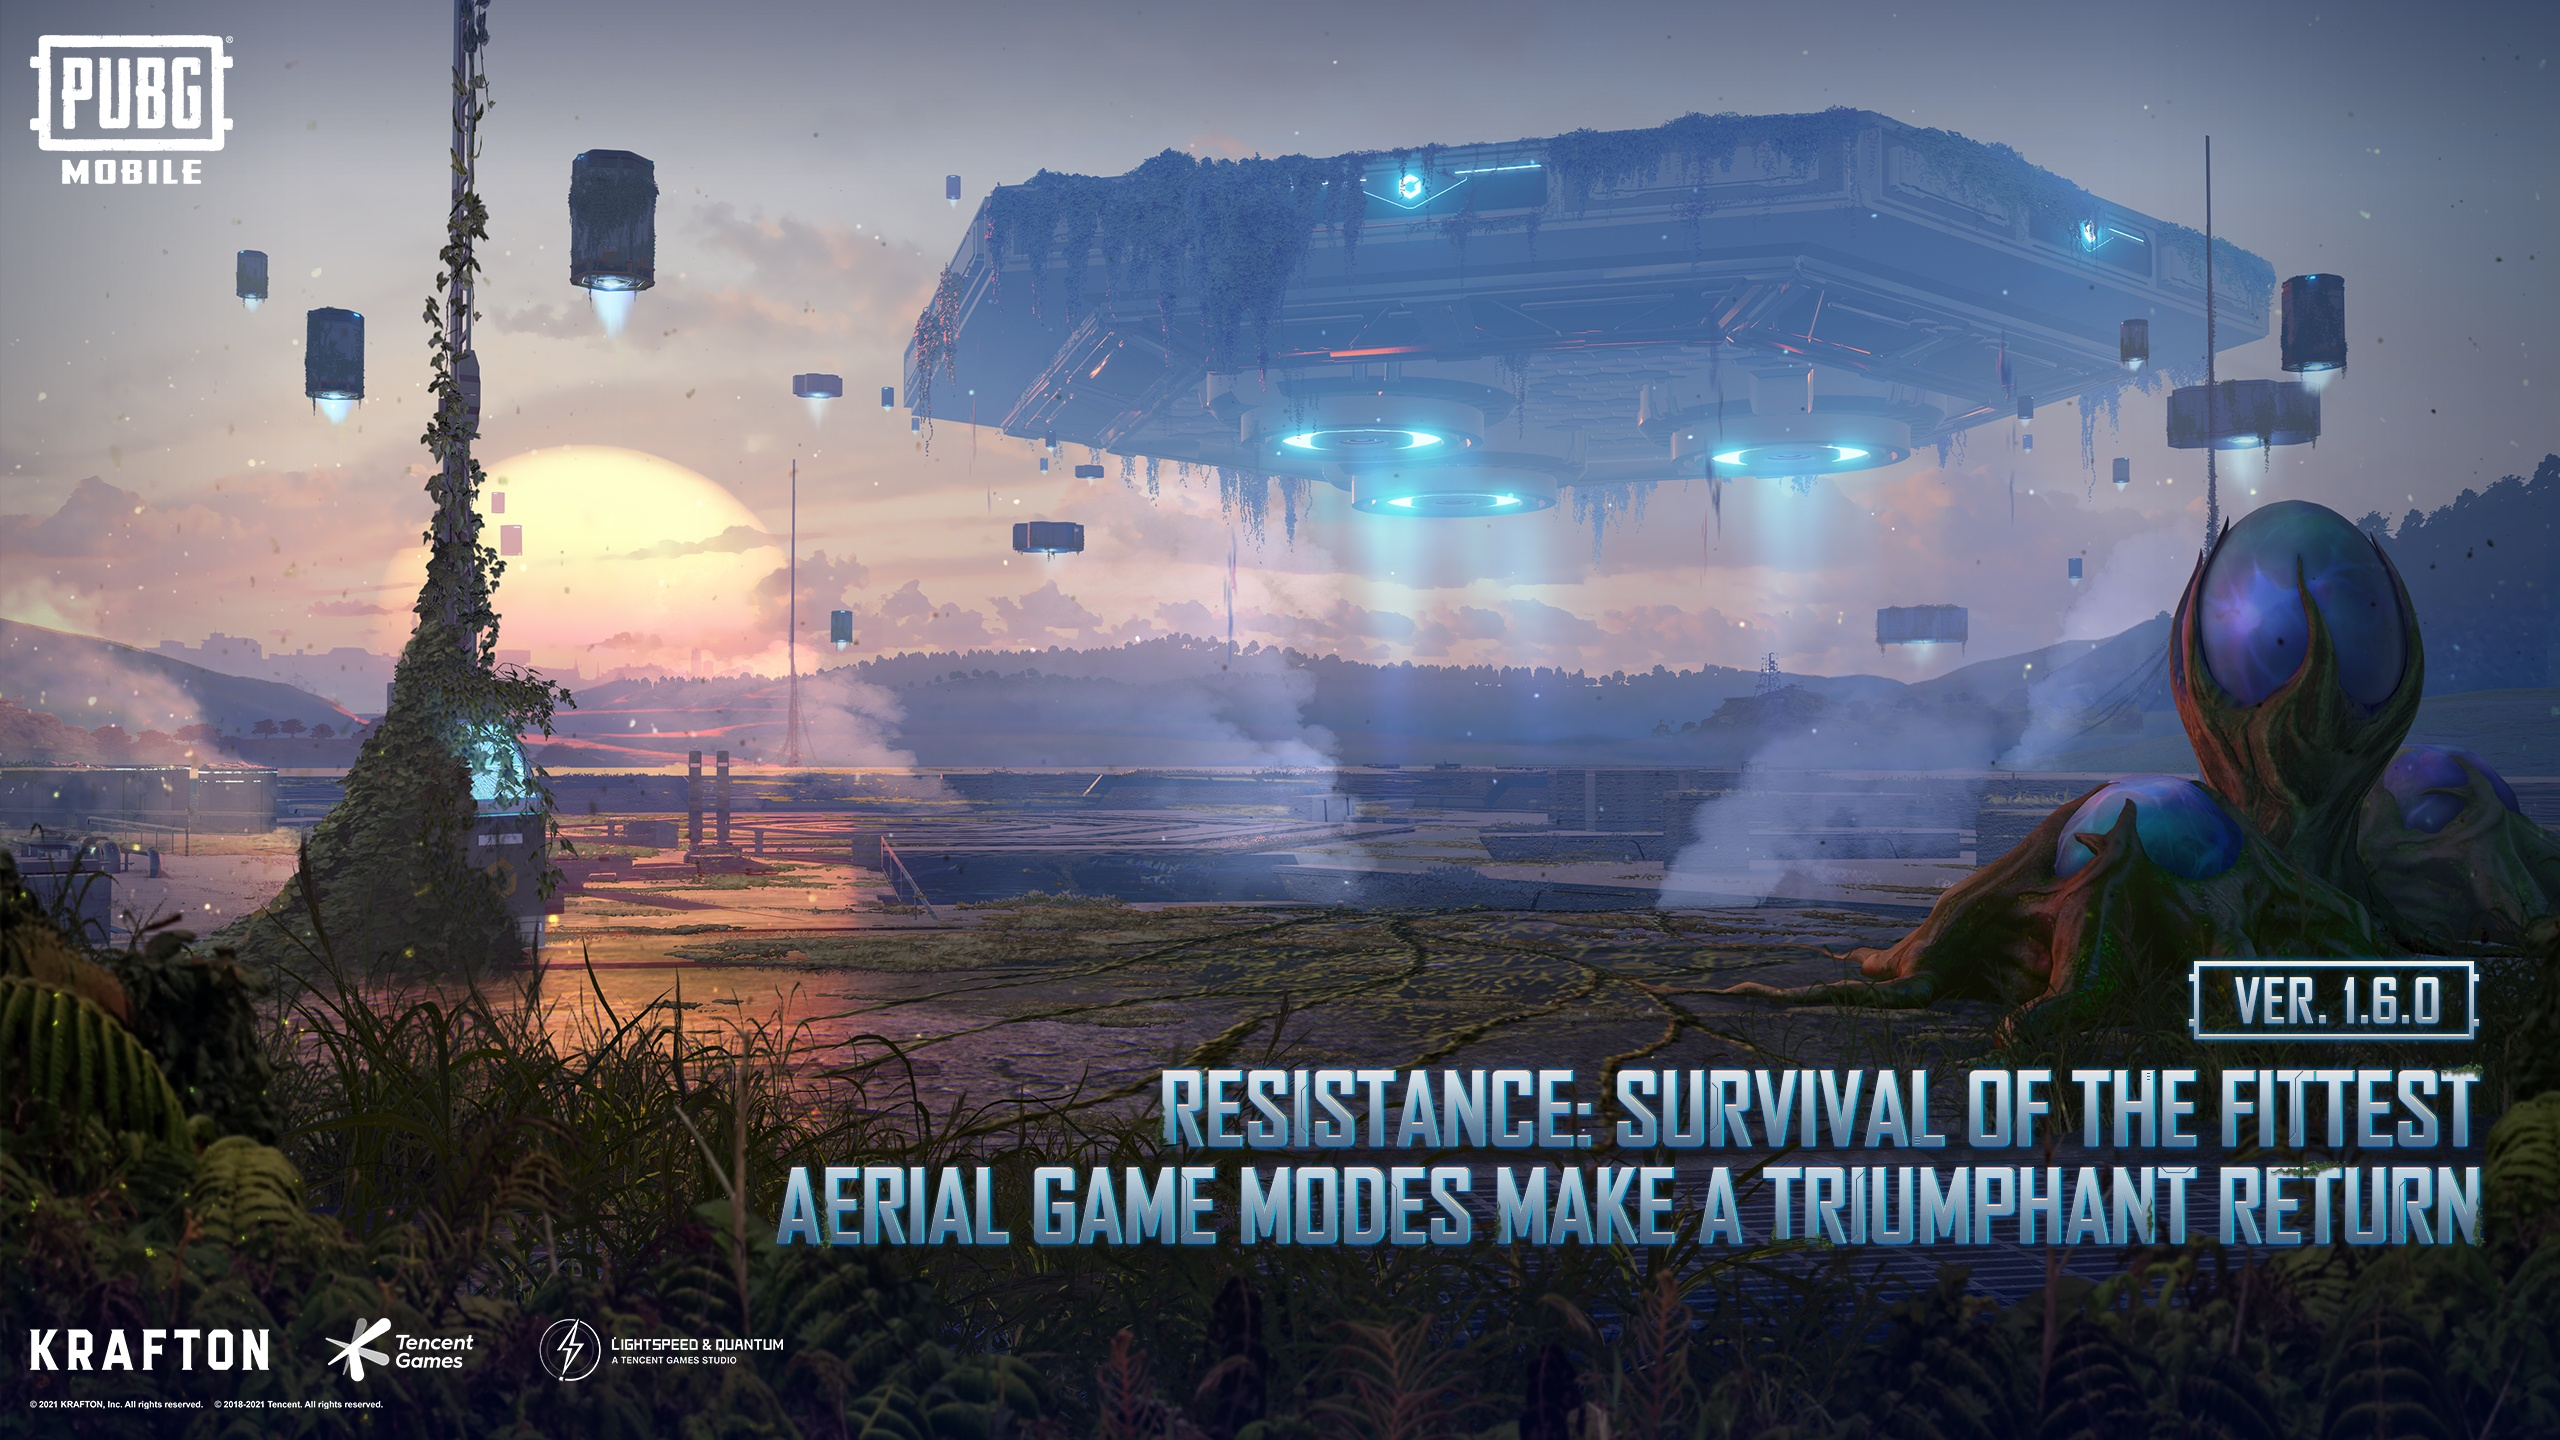 PUBG Mobile set to launch Resistance: Survival of the Fittest